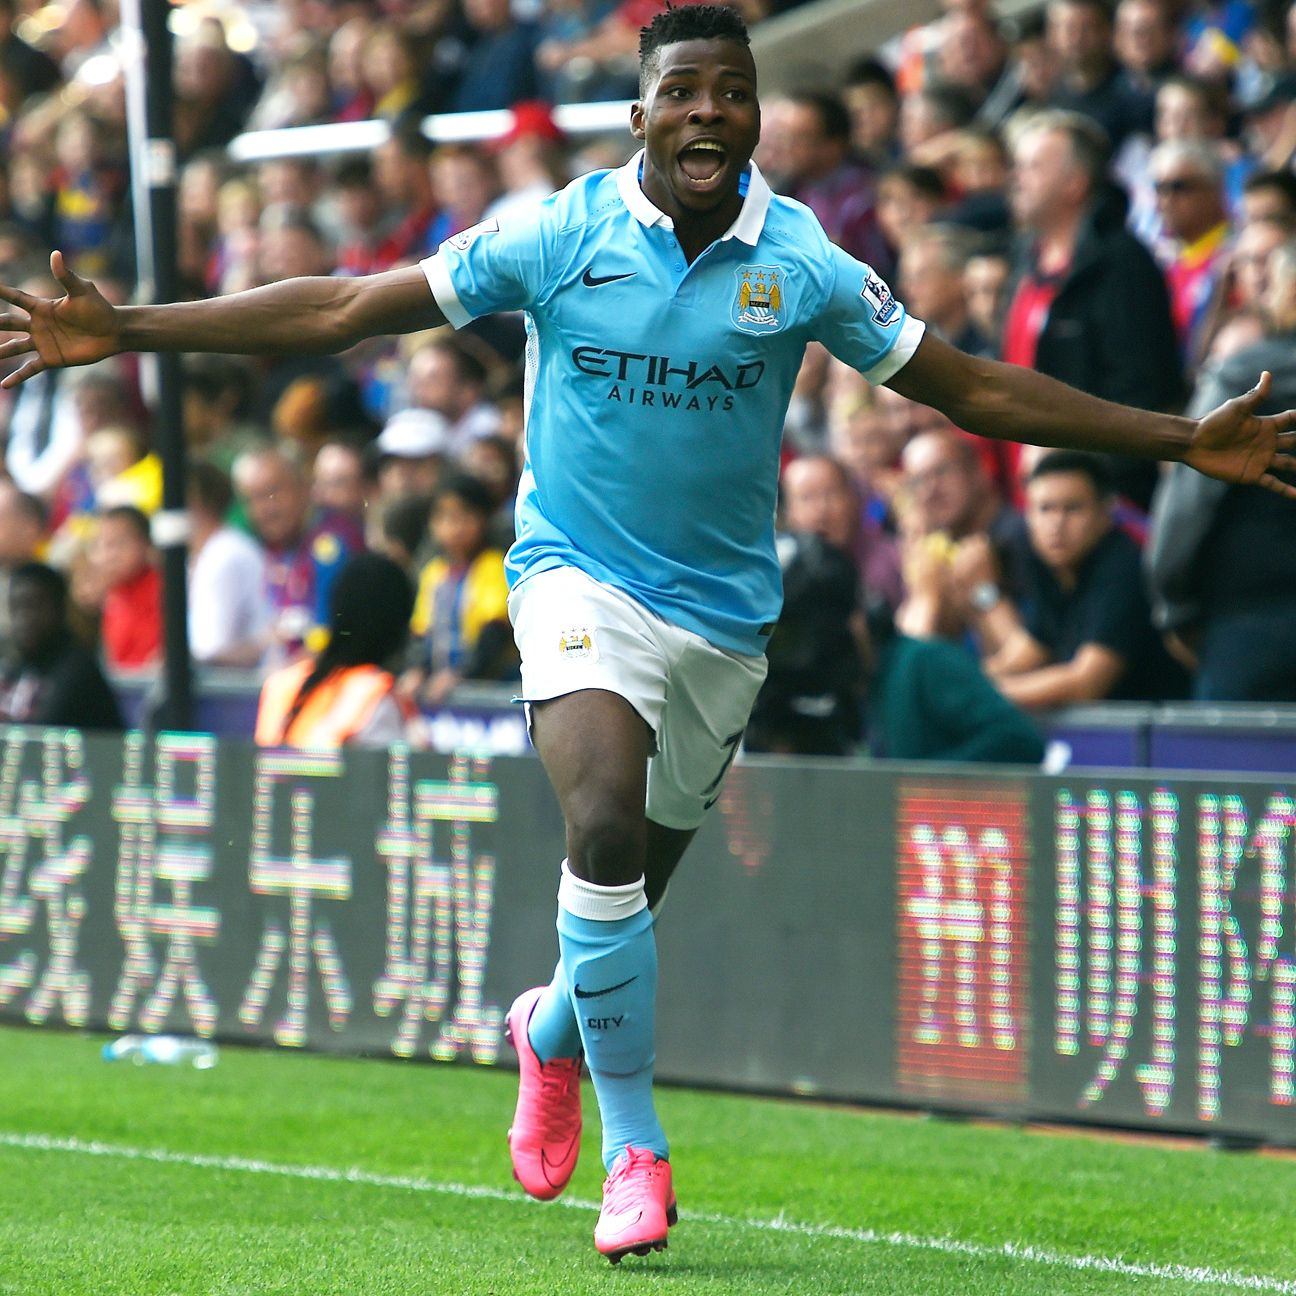 Kelechi Iheanacho's heroics with Manchester City could result in a Nigeria senior team call-up.